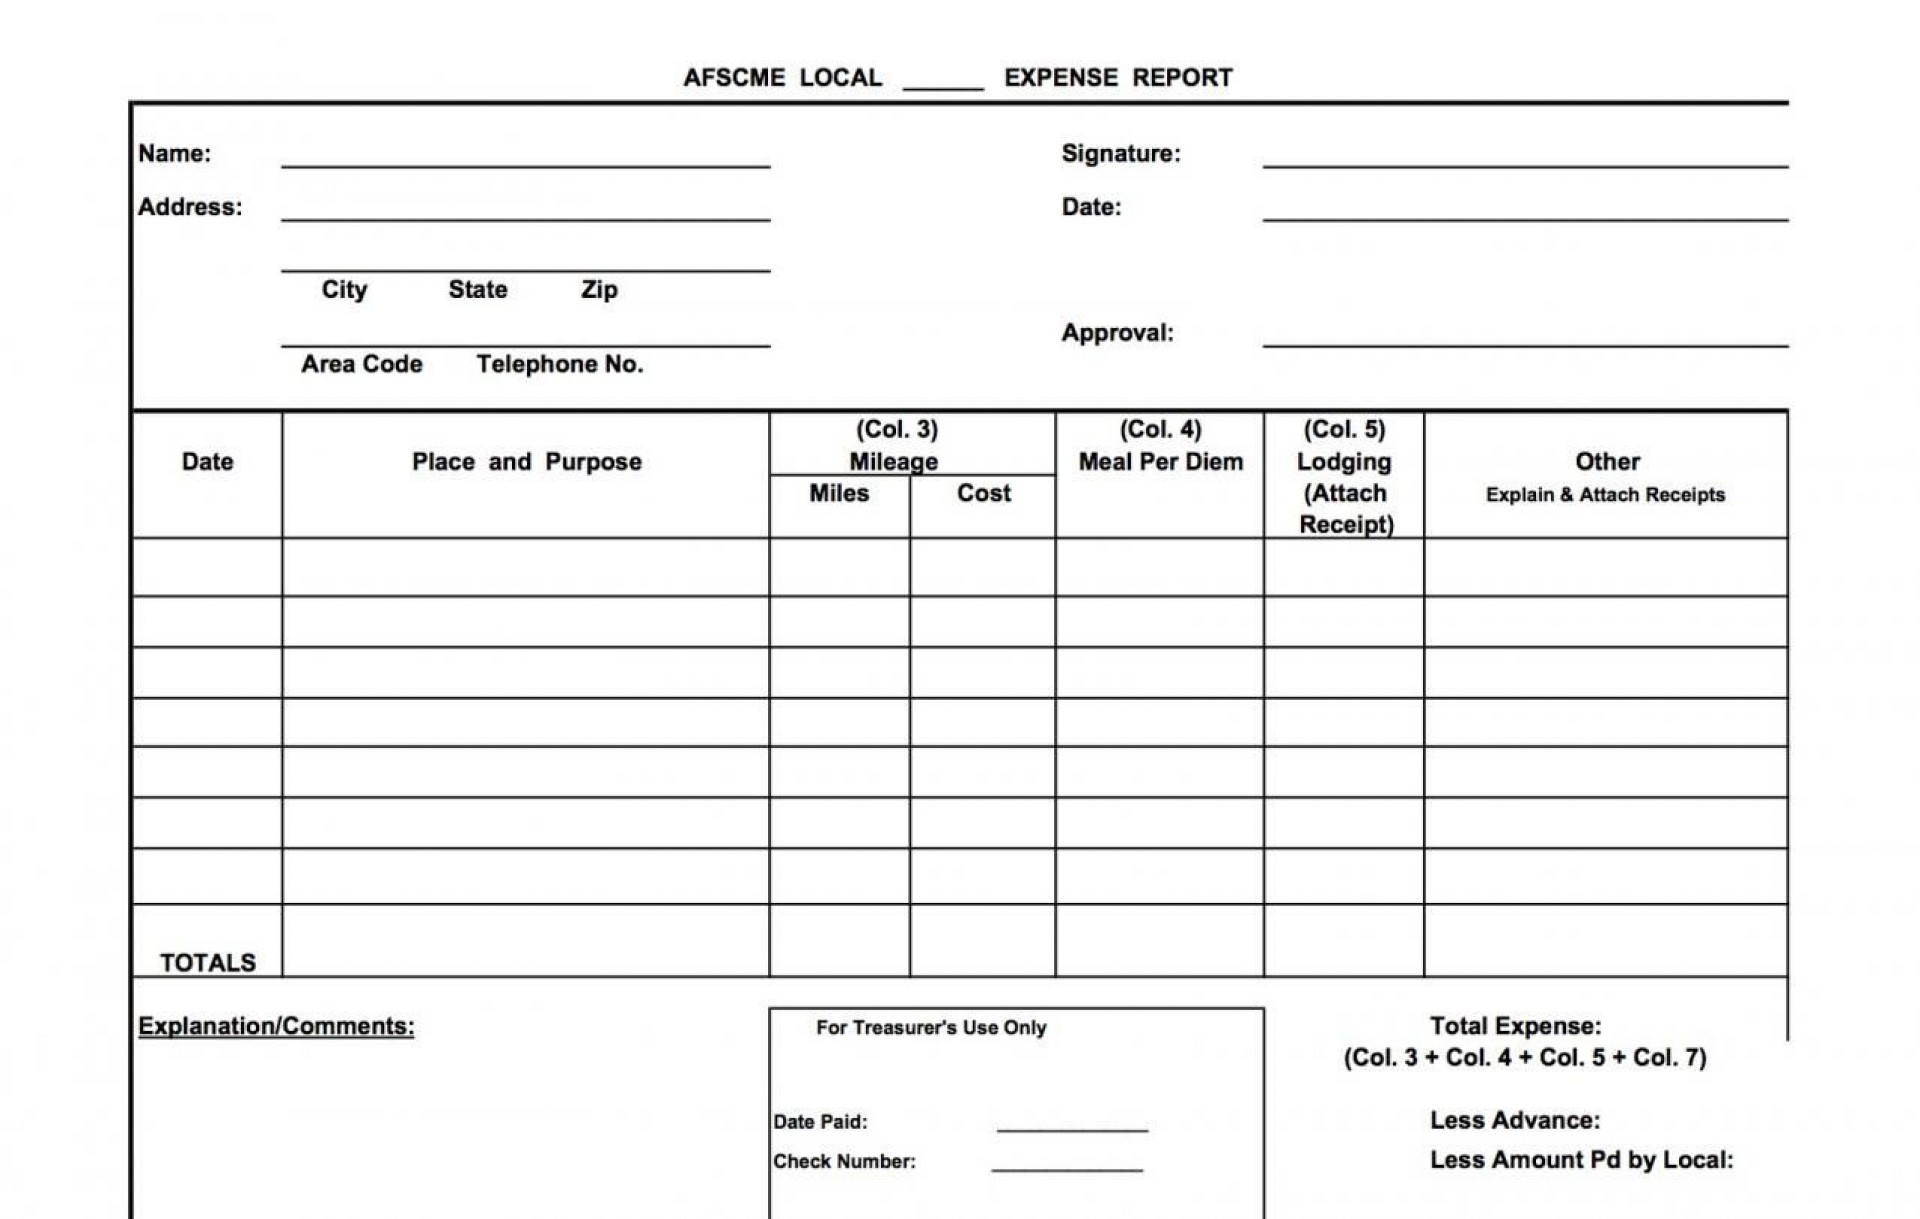 001 Stupendou Free Blank Expense Report Form Photo  Forms Template1920